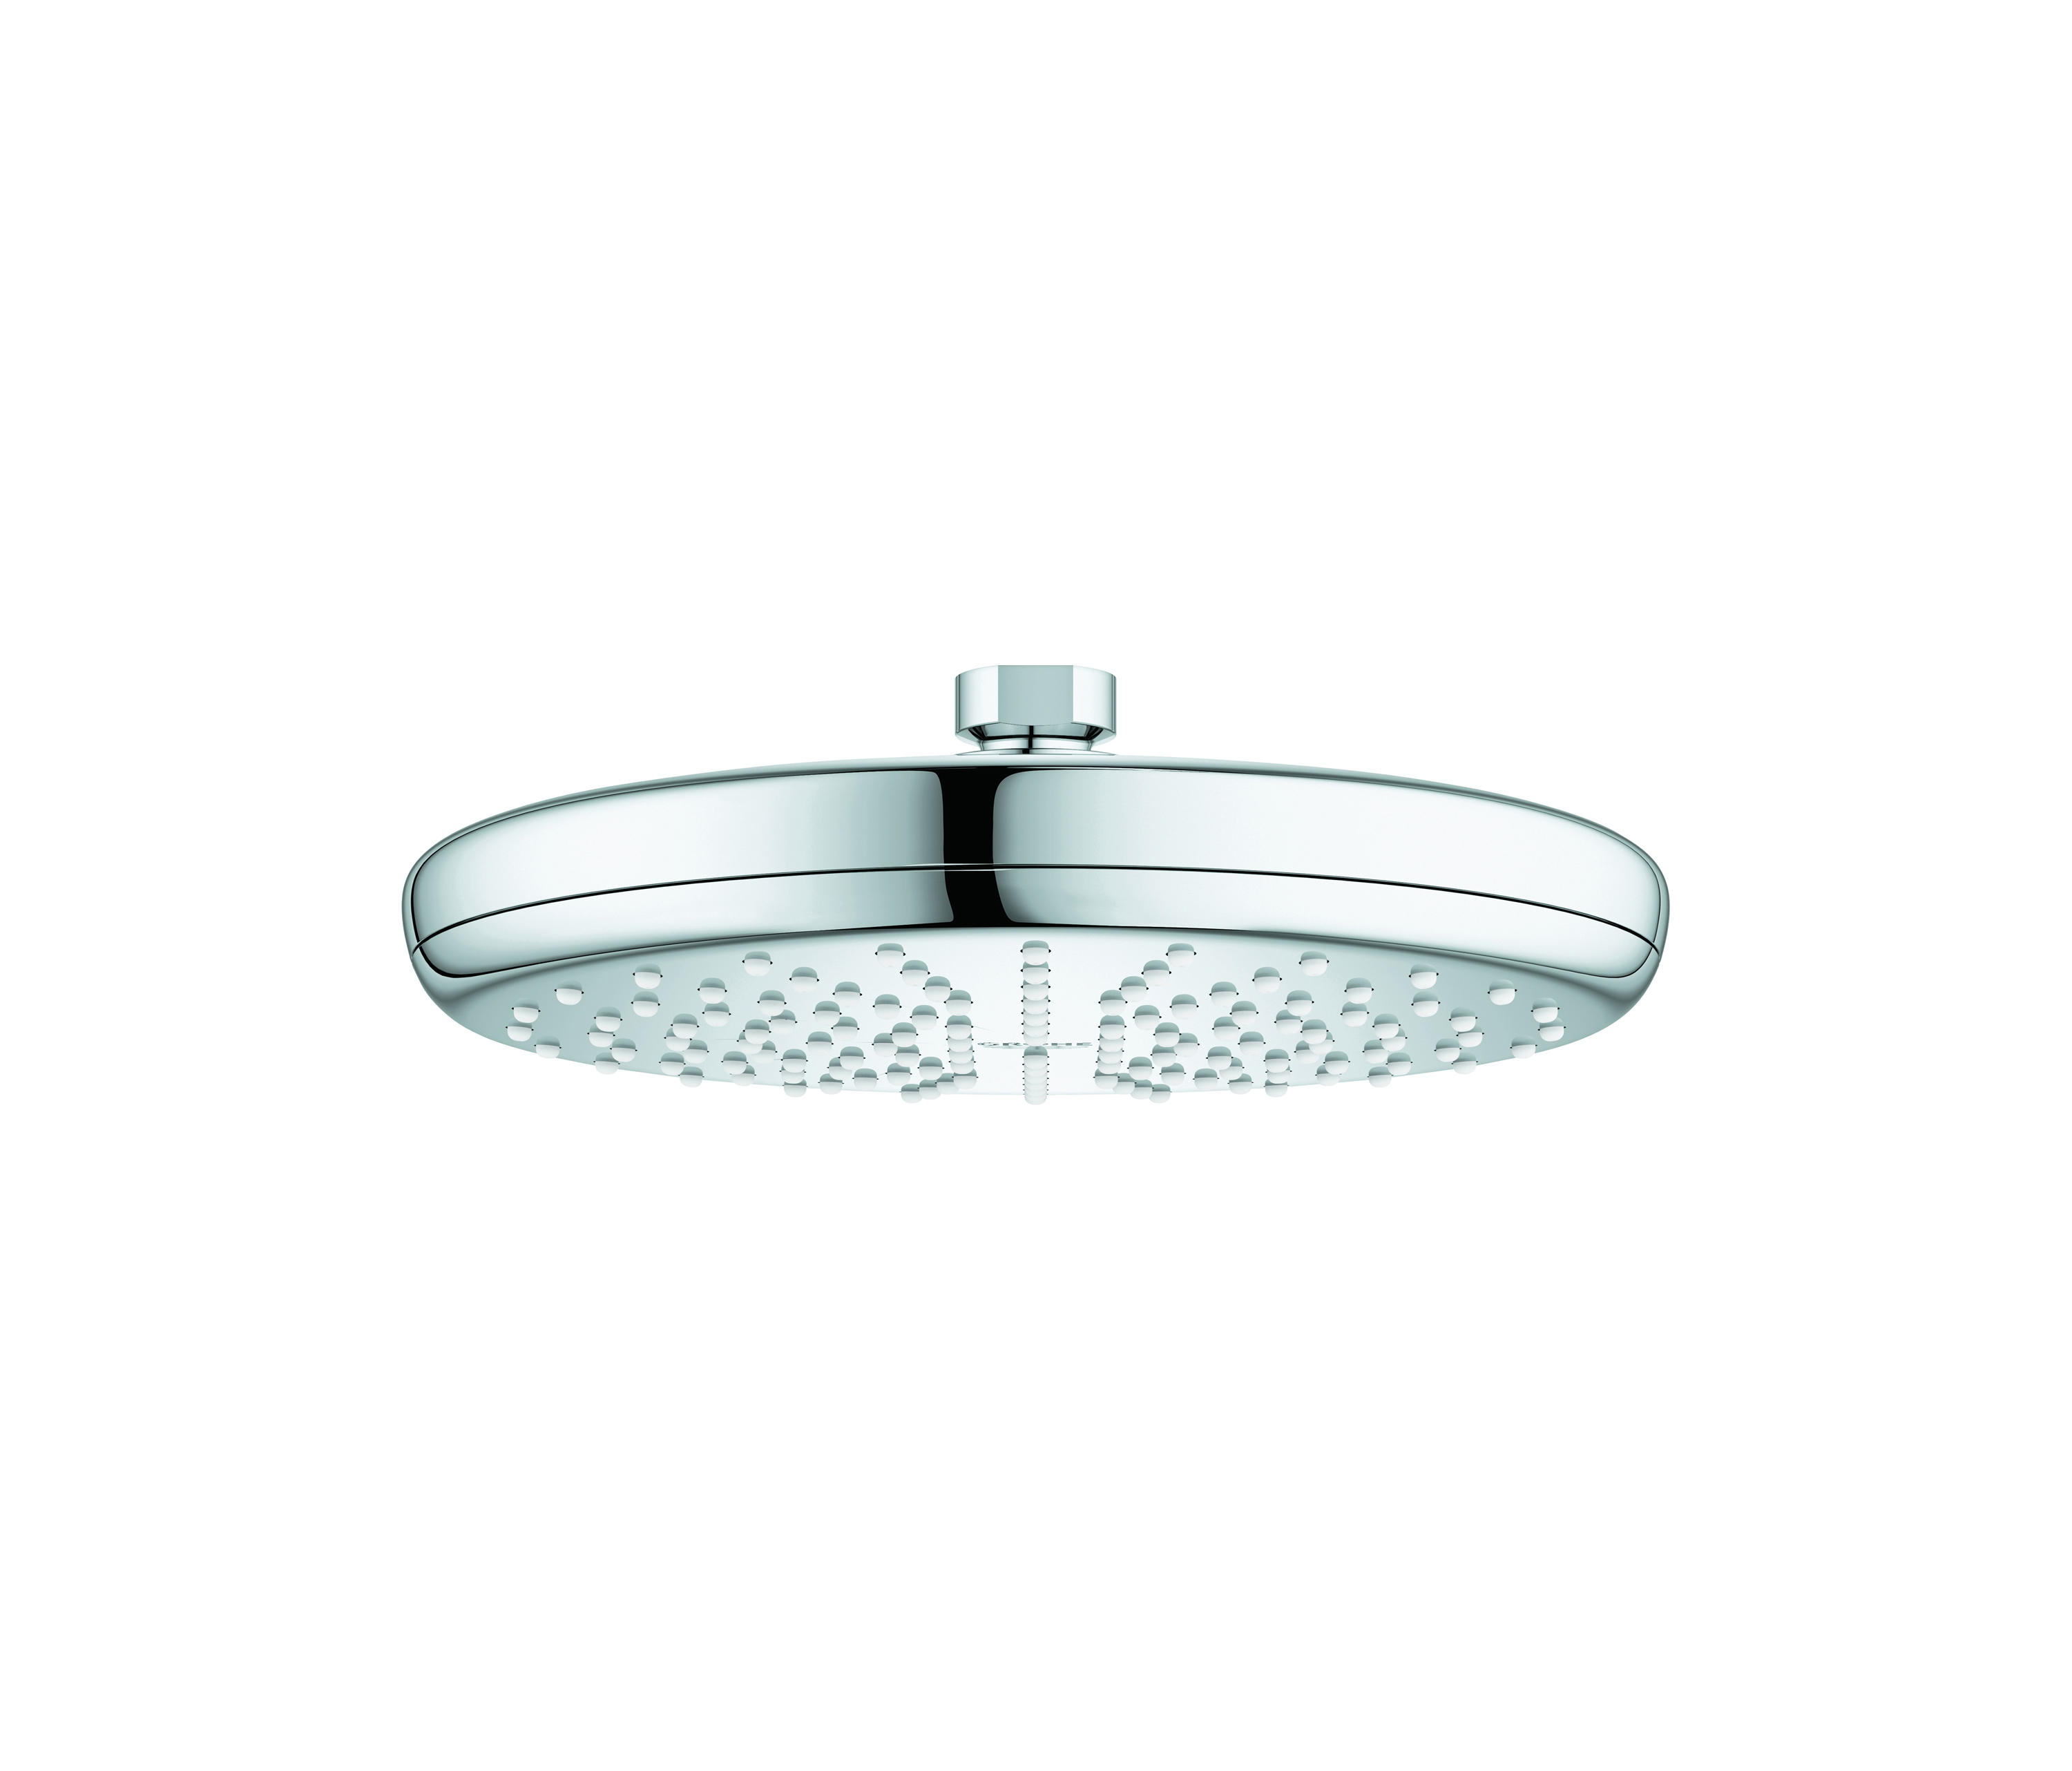 TEMPESTA 210 HEAD SHOWER 1 SPRAY - Shower taps / mixers from GROHE ...